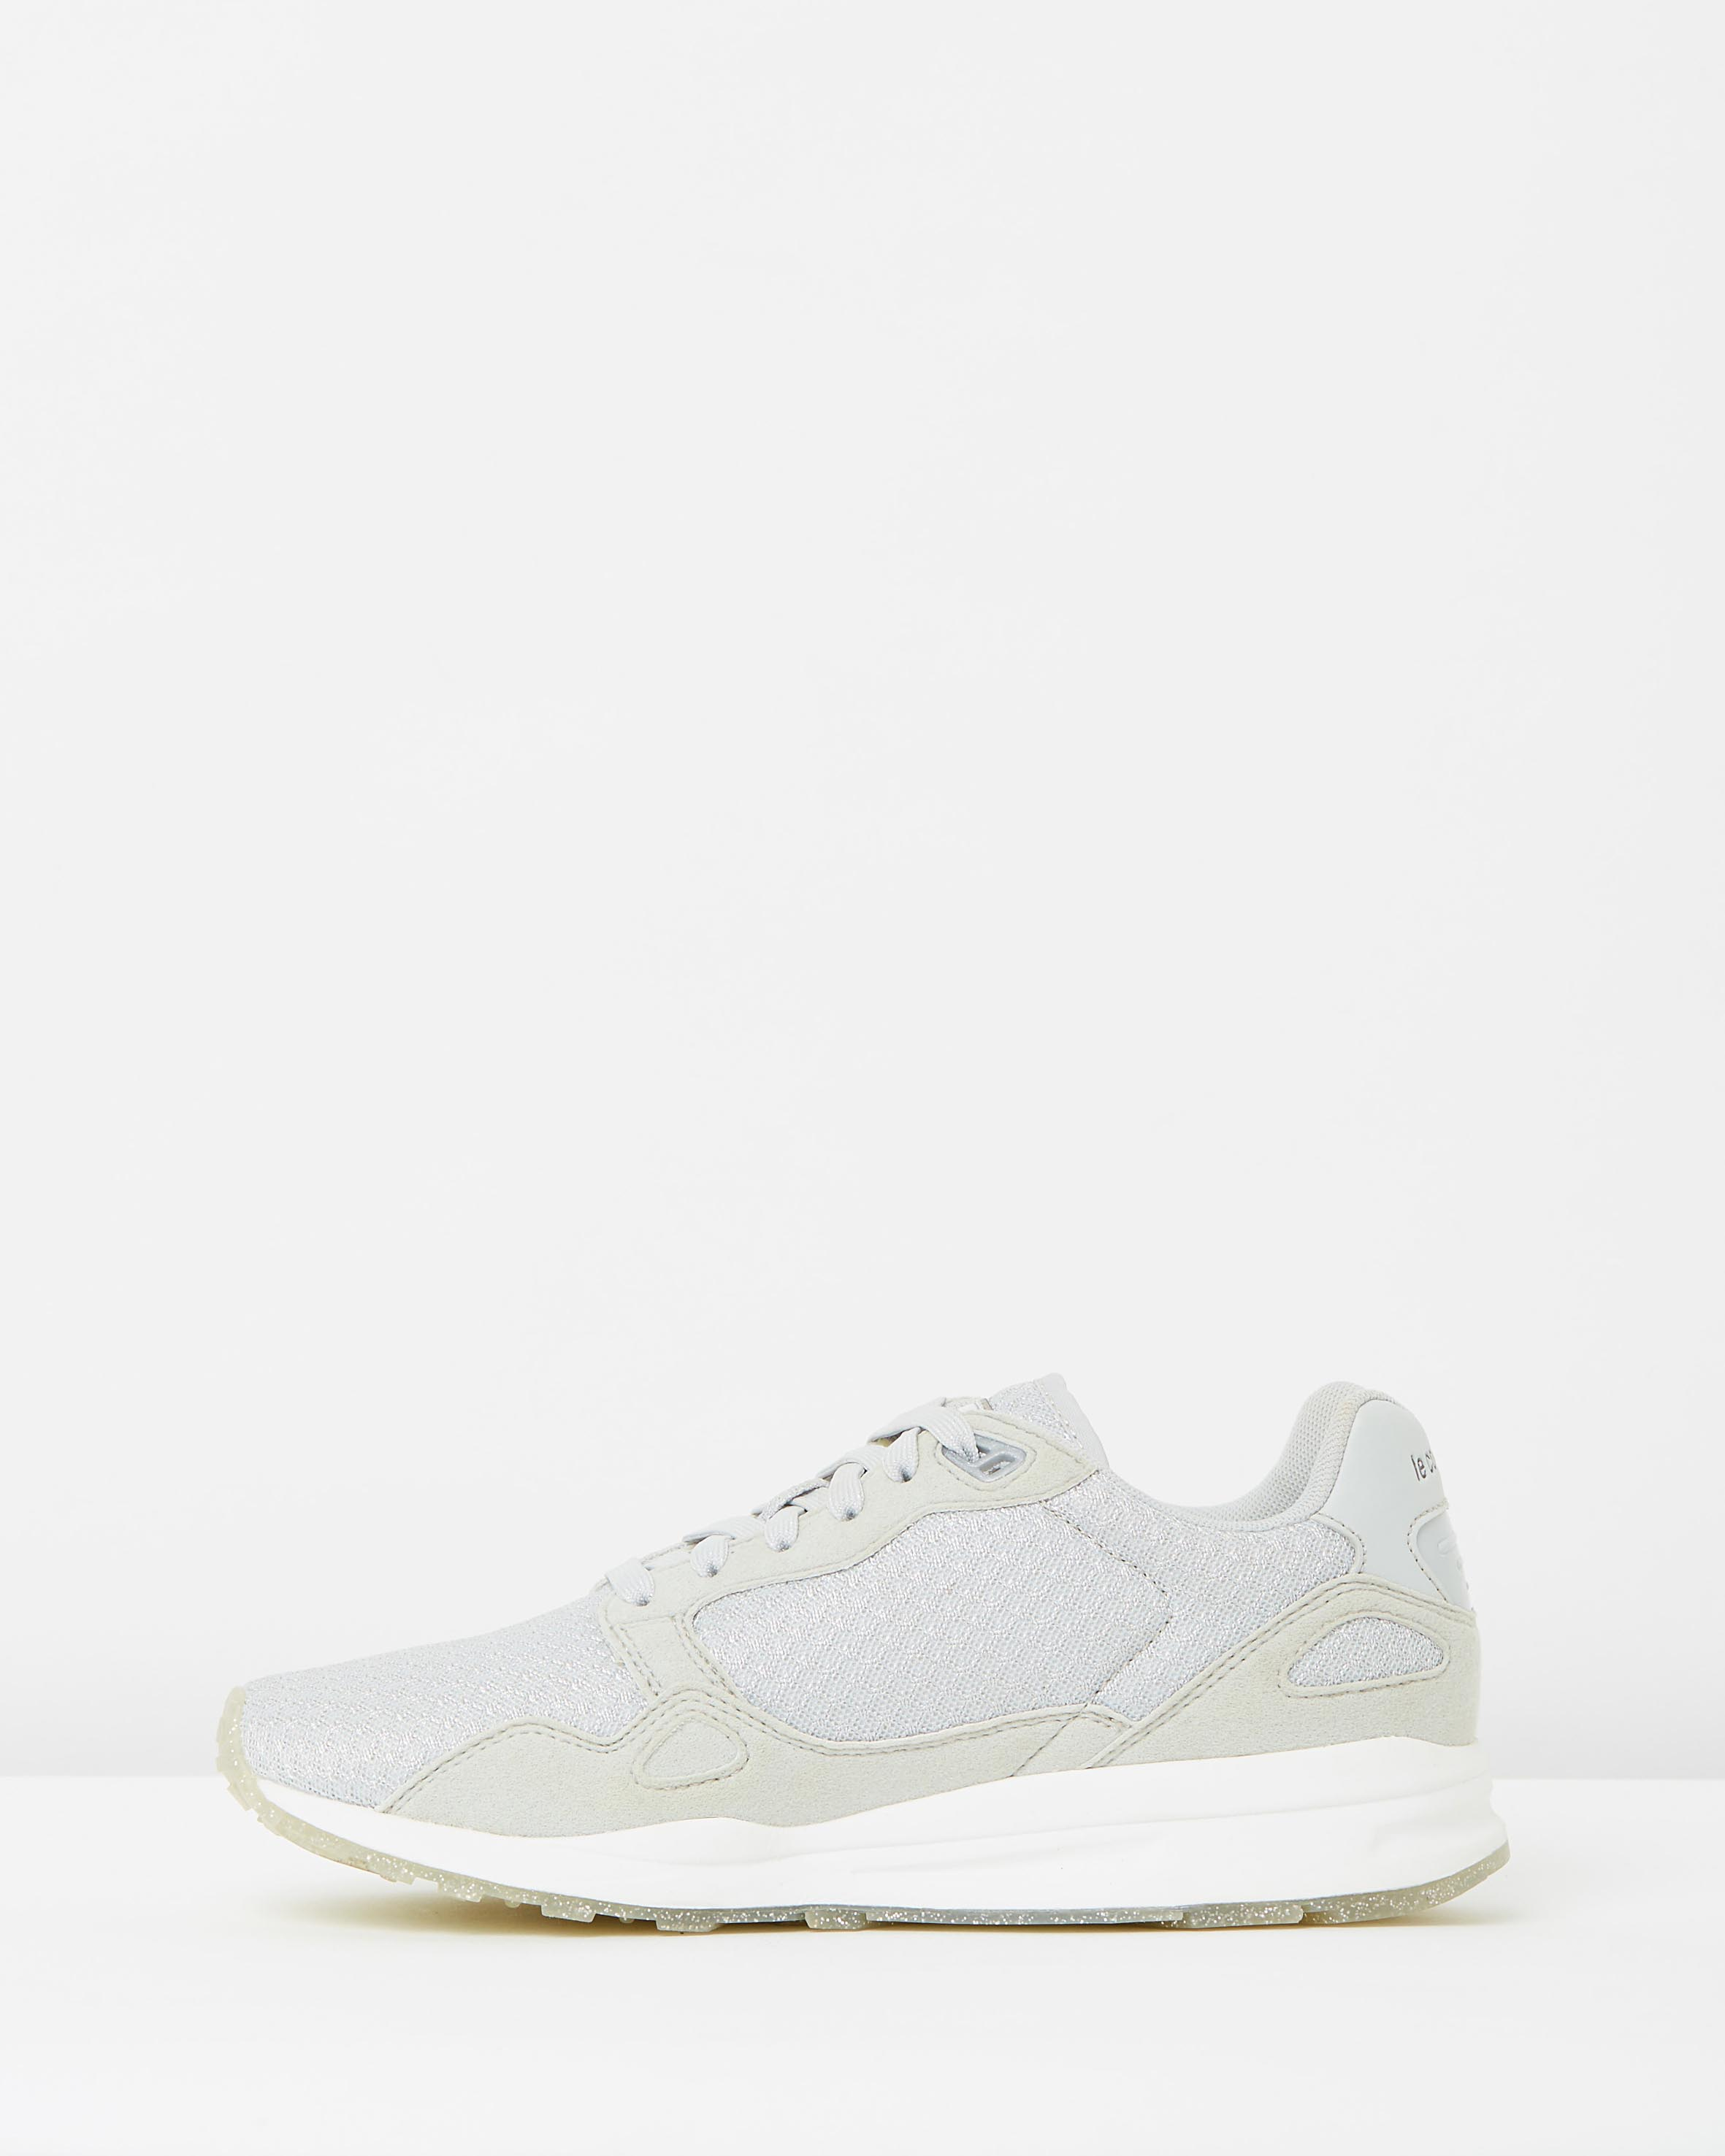 5335eb110d89 ... Le Coq Sportif Womens Galet LCS R900 W Sparkly Trainers 3 ...